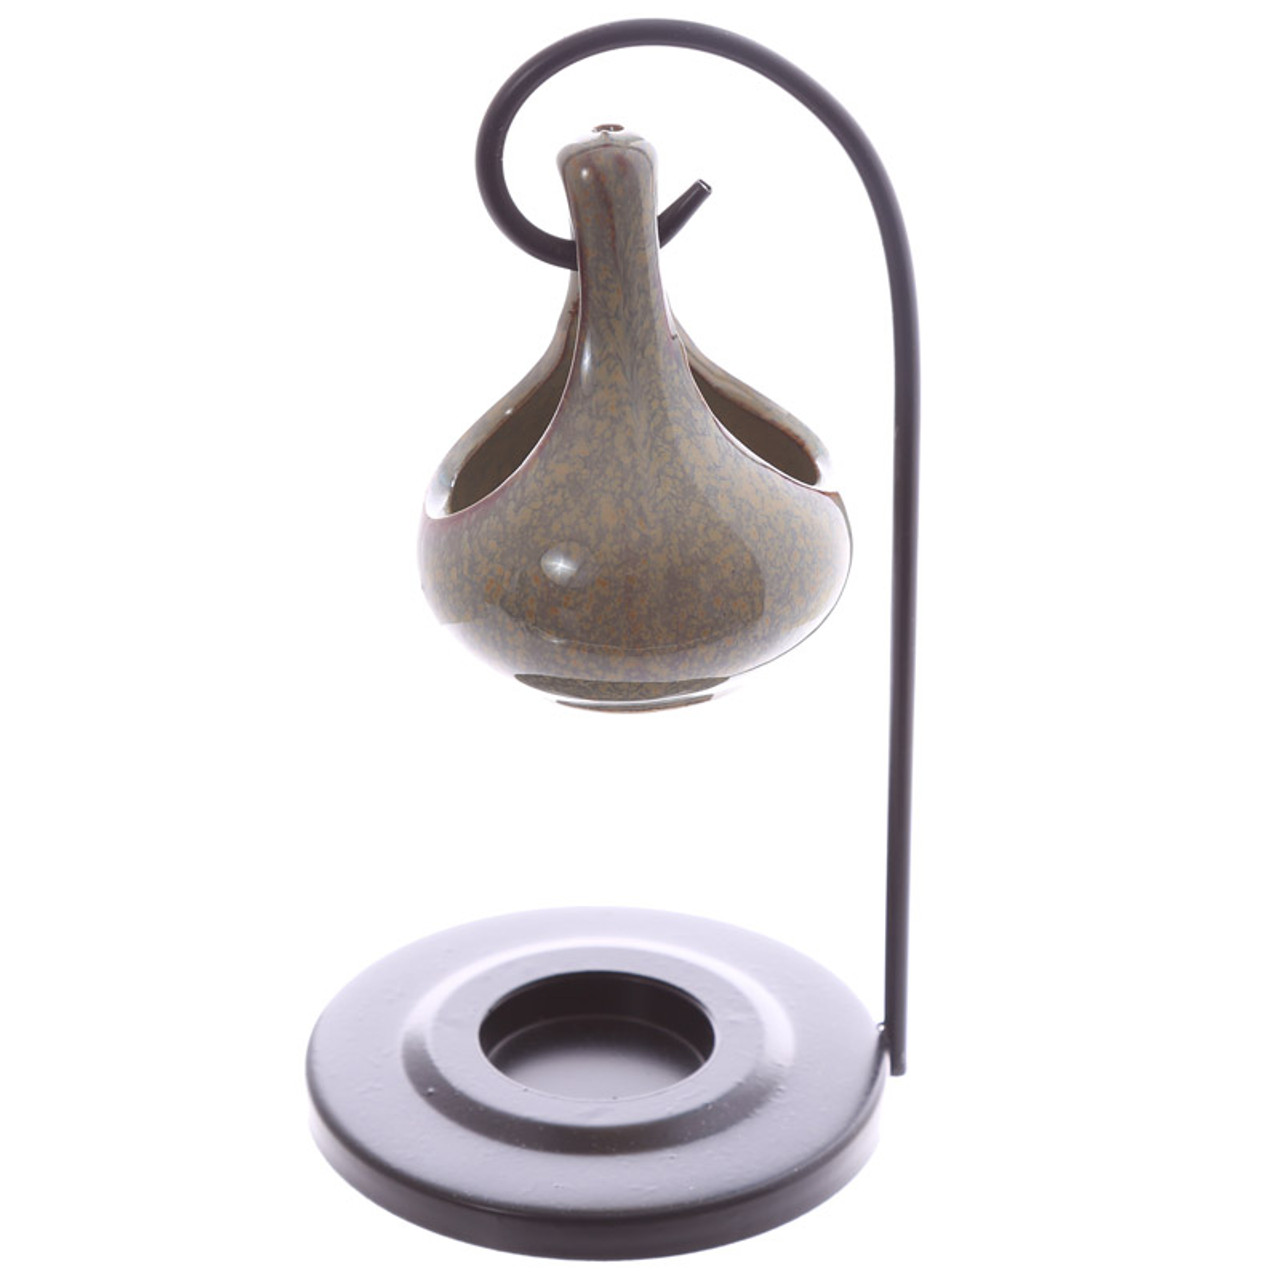 Teardrop Hanging Oil Burner With Stand